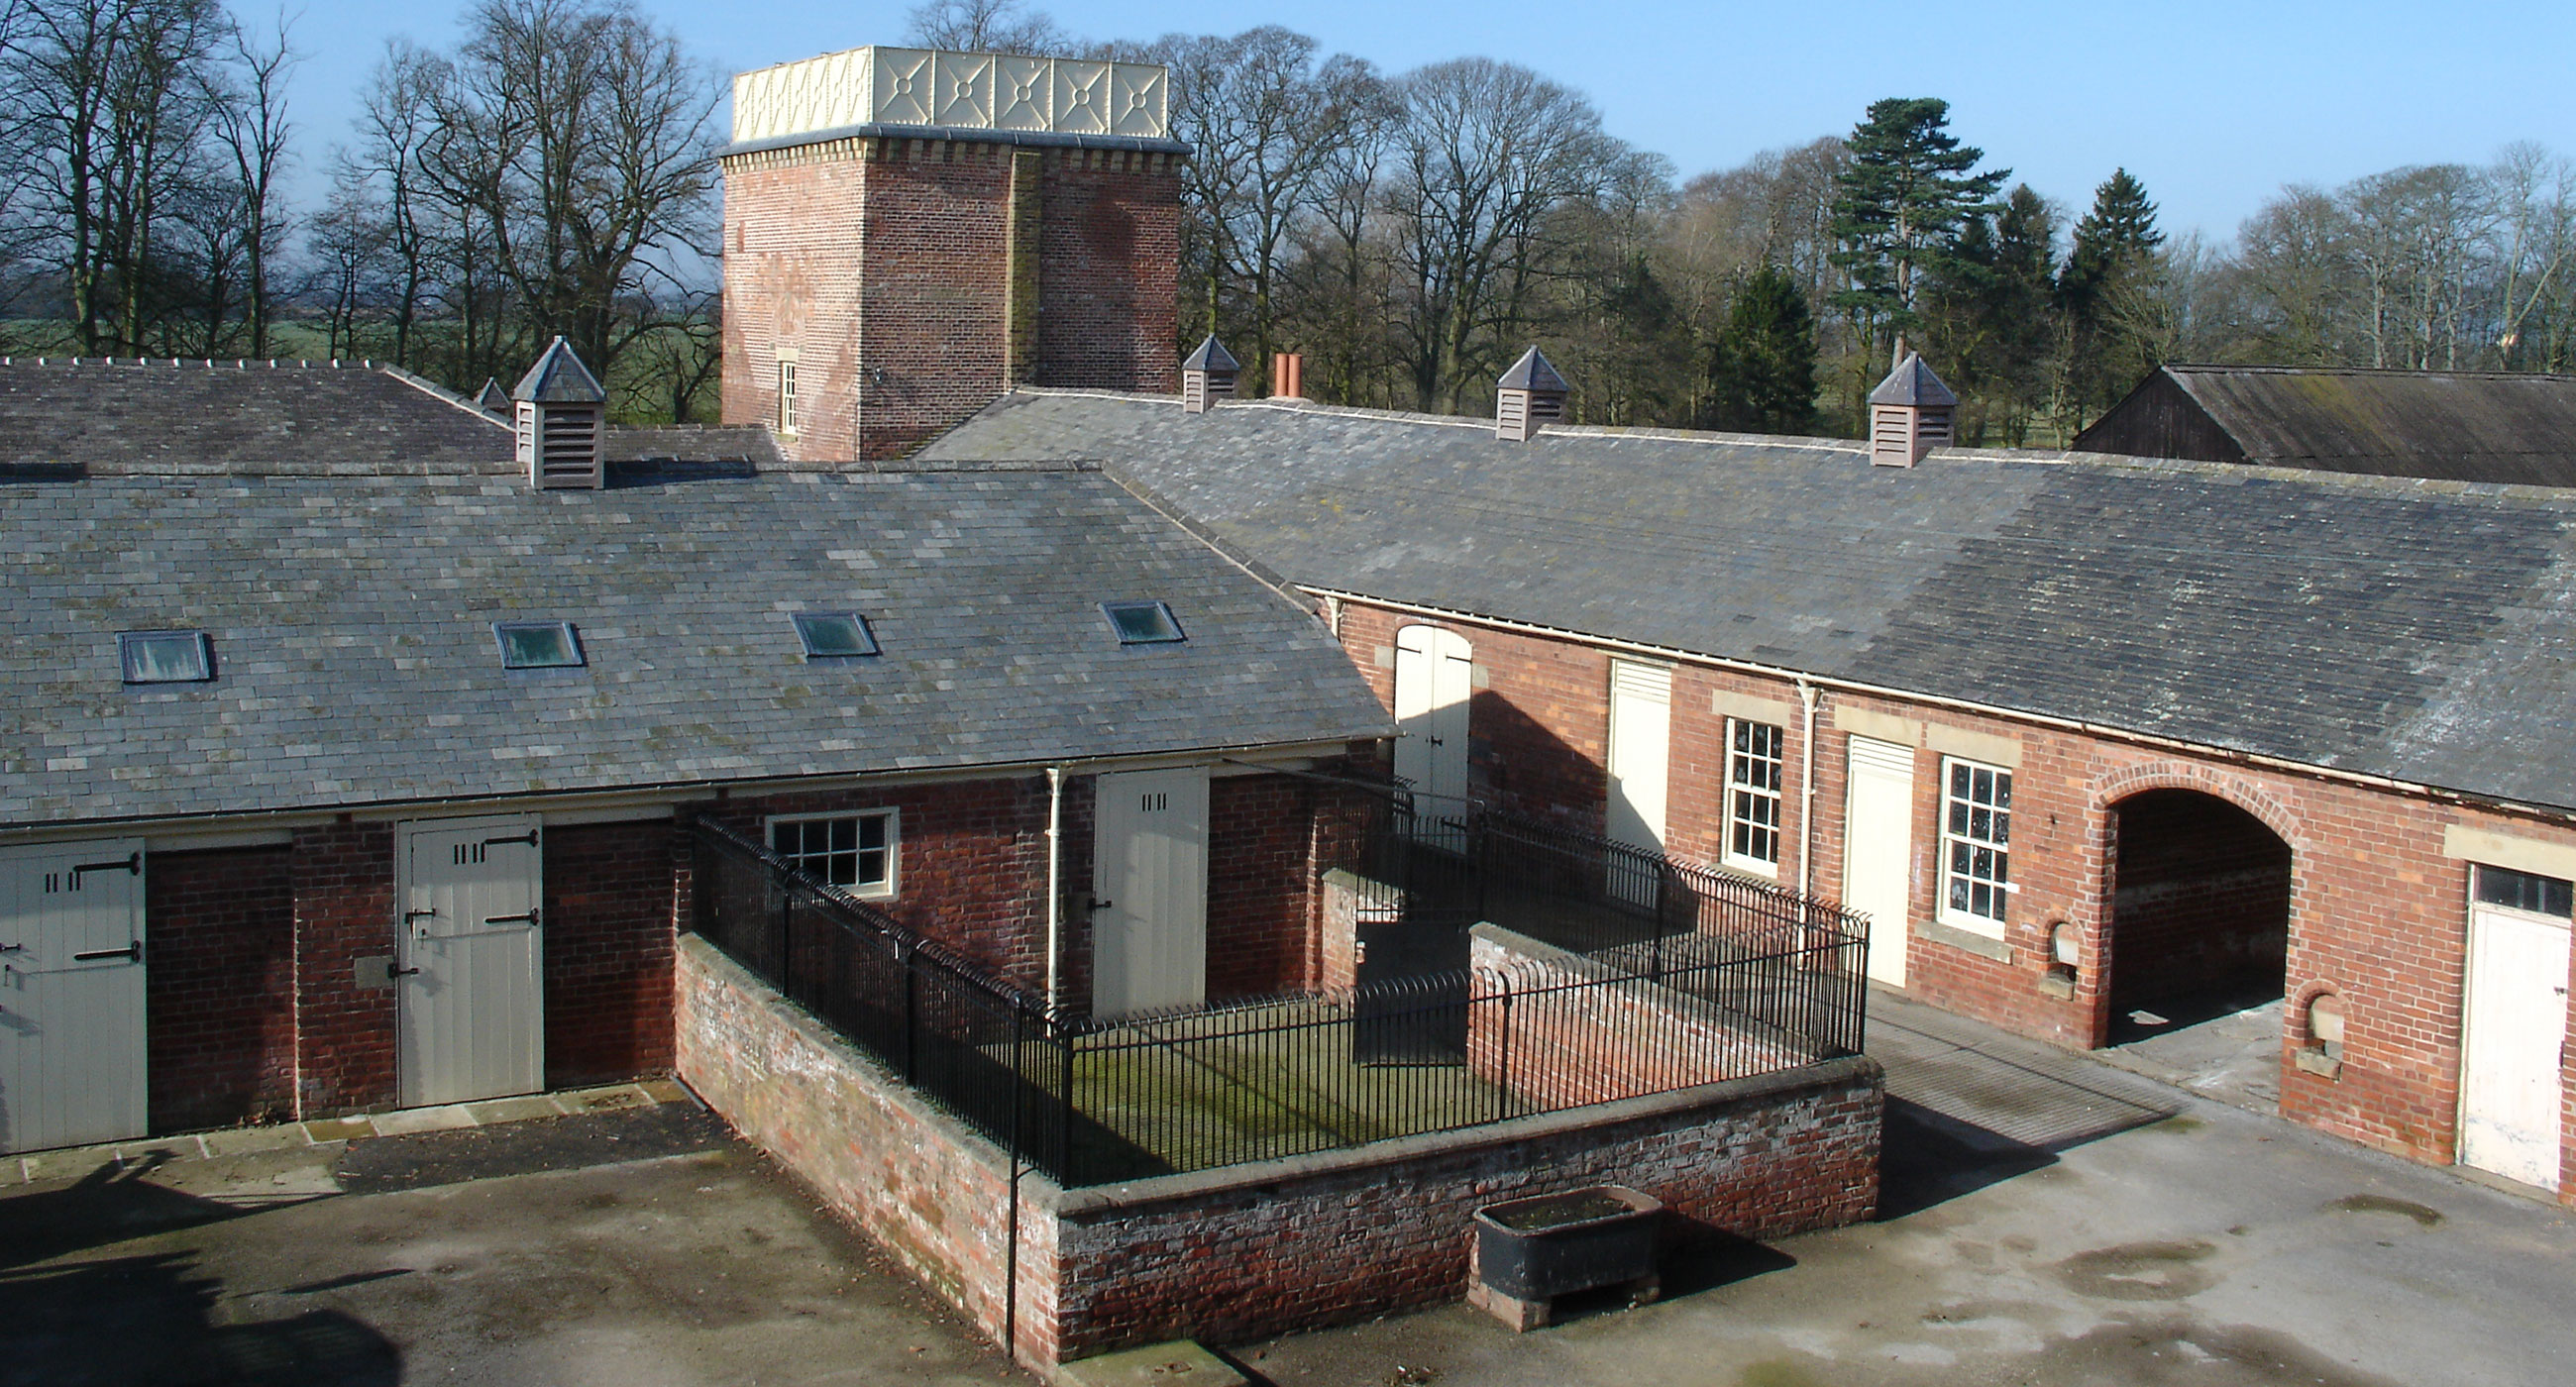 Myton Stud Farm - A heritage renovation of a Victorian model farm